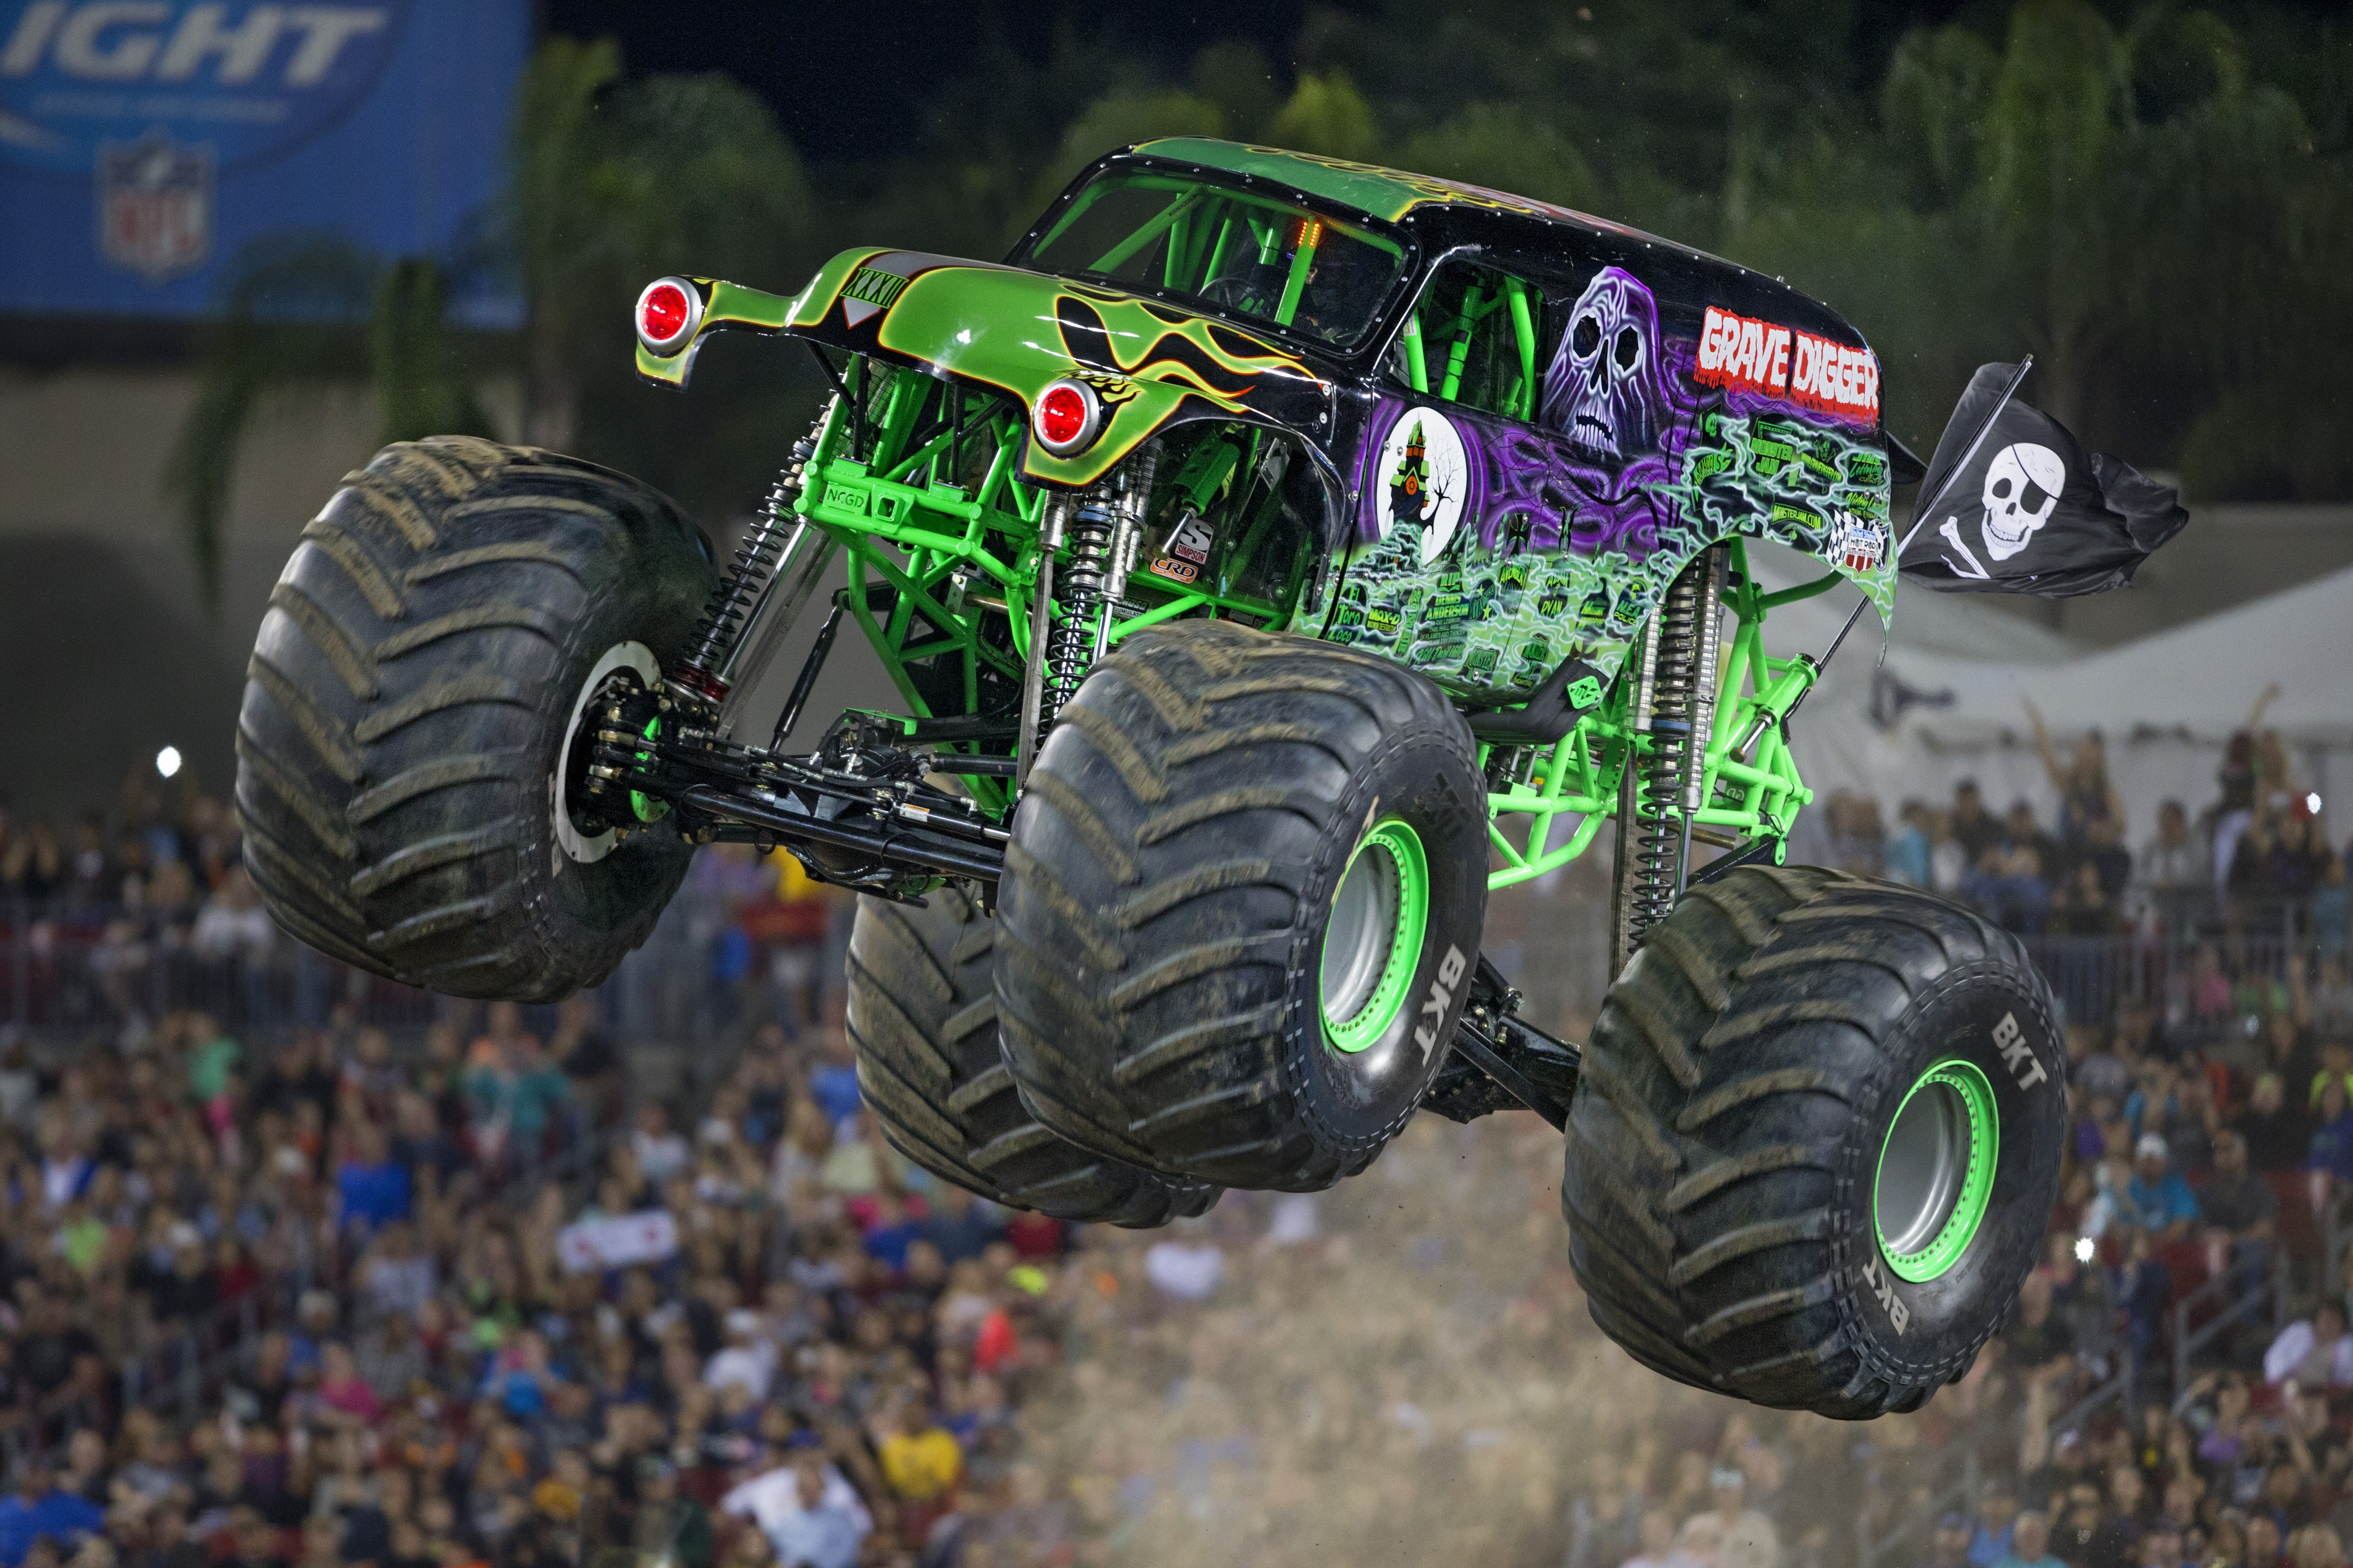 Monster Jam Cleveland features gravedigger, maximum destruction, monster mutt, captain's curse and blue thunder, a variety of tricks, hitting obstacles most of the track including cars, buses, caravans and mounds, factor spectacular acrobatics etc.